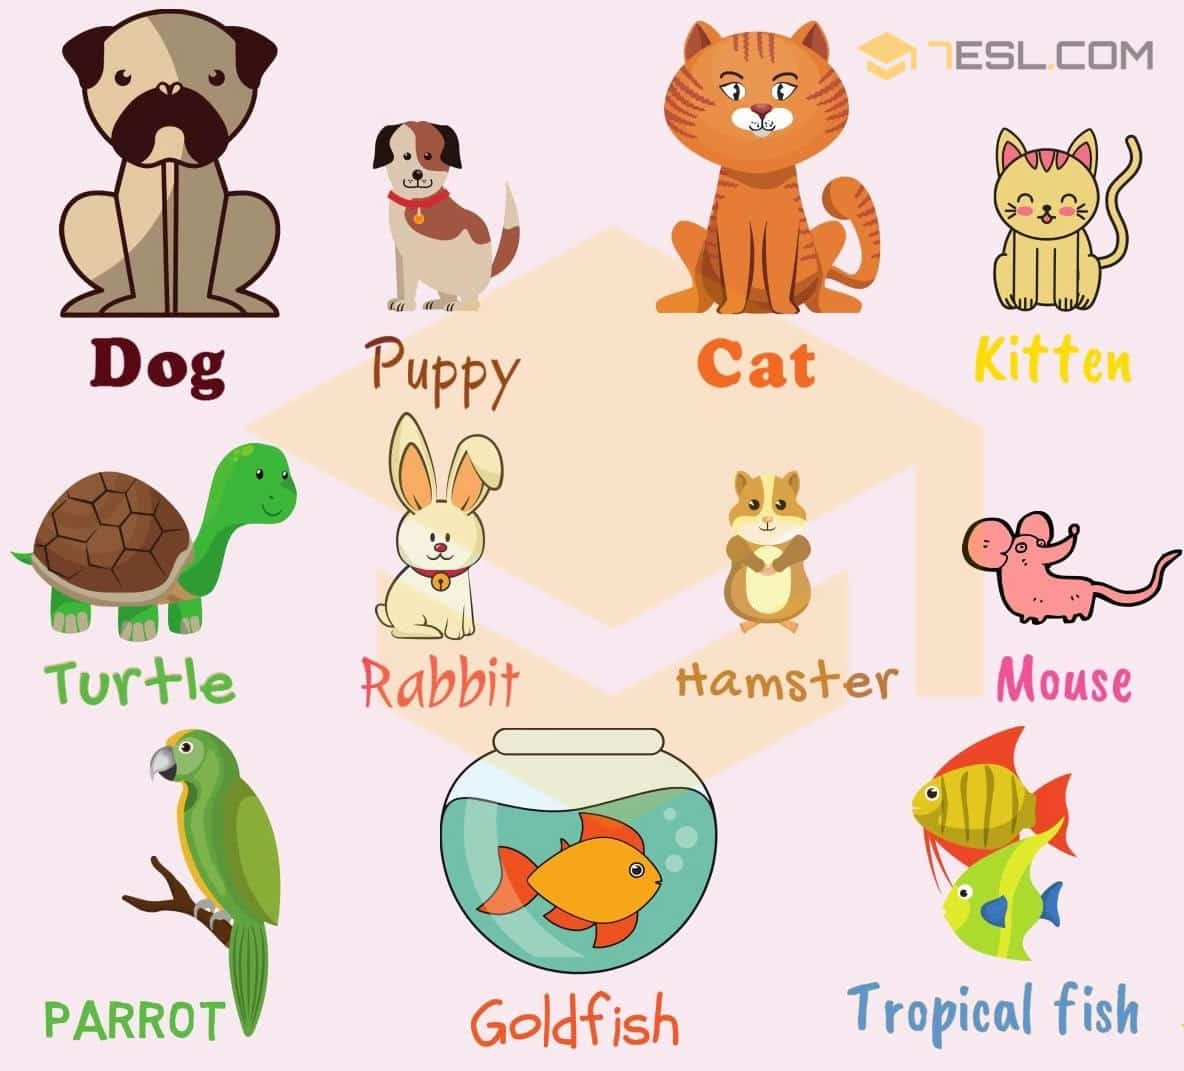 Pet Names: List of Pets & Types of Pets with Pictures